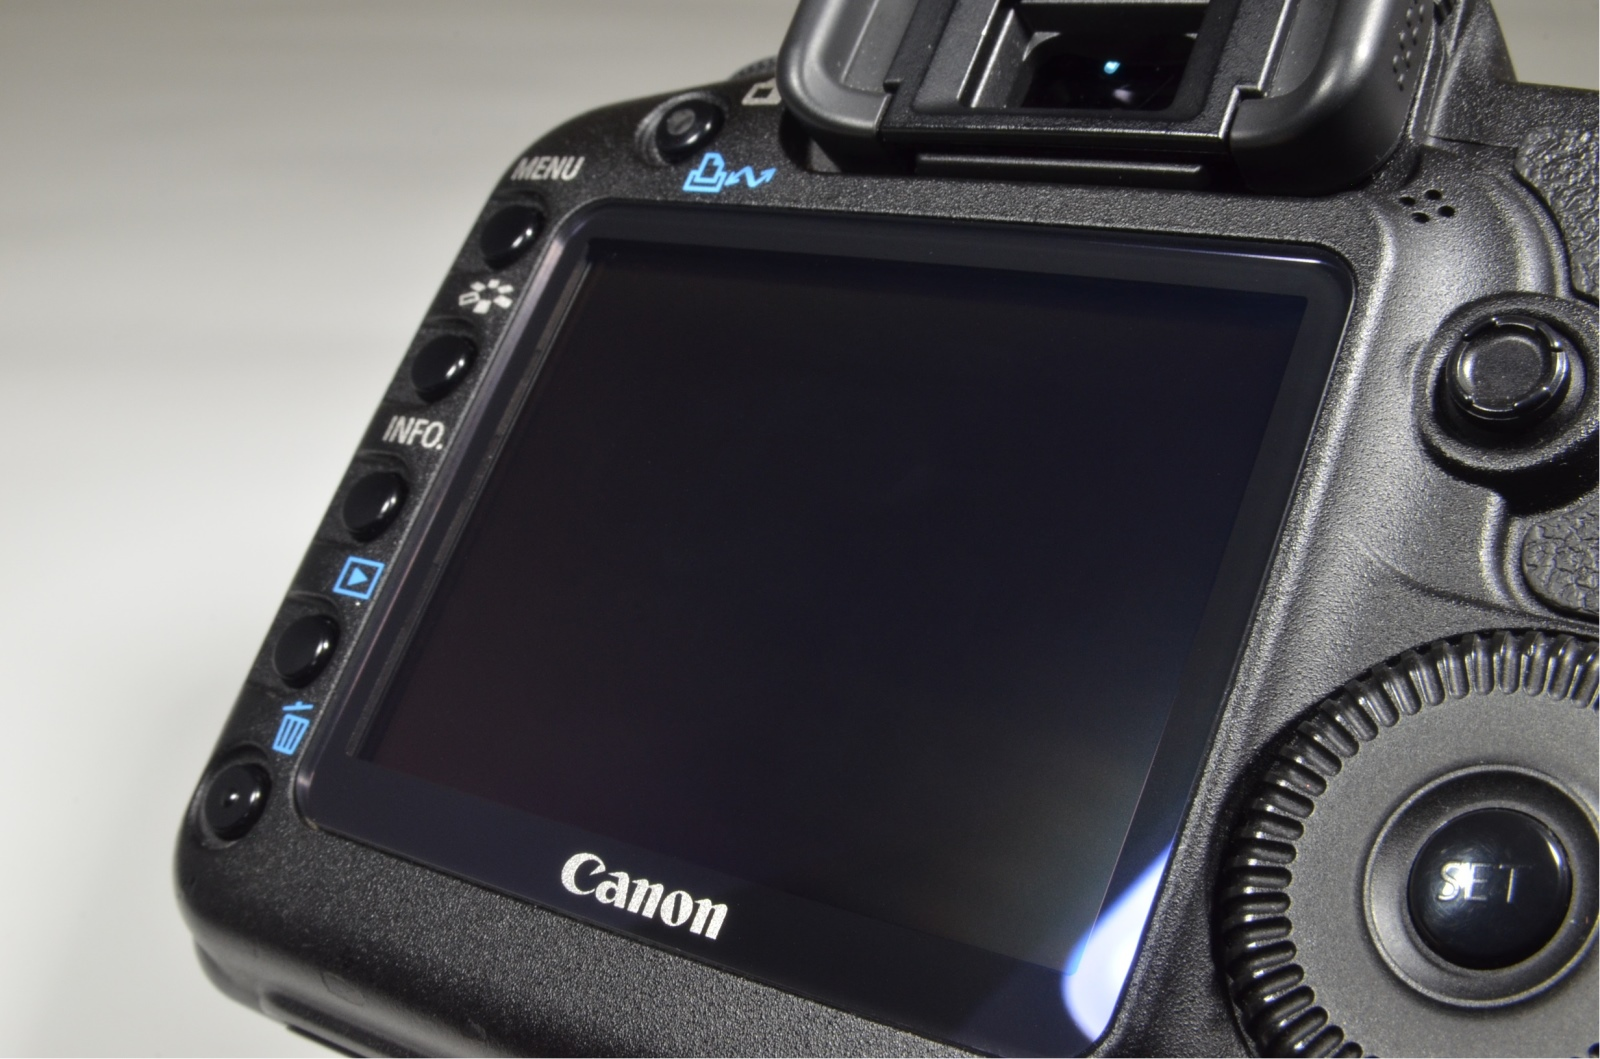 canon eos 5d mark ii with ef 28-135mm f3.5-5.6 is usm